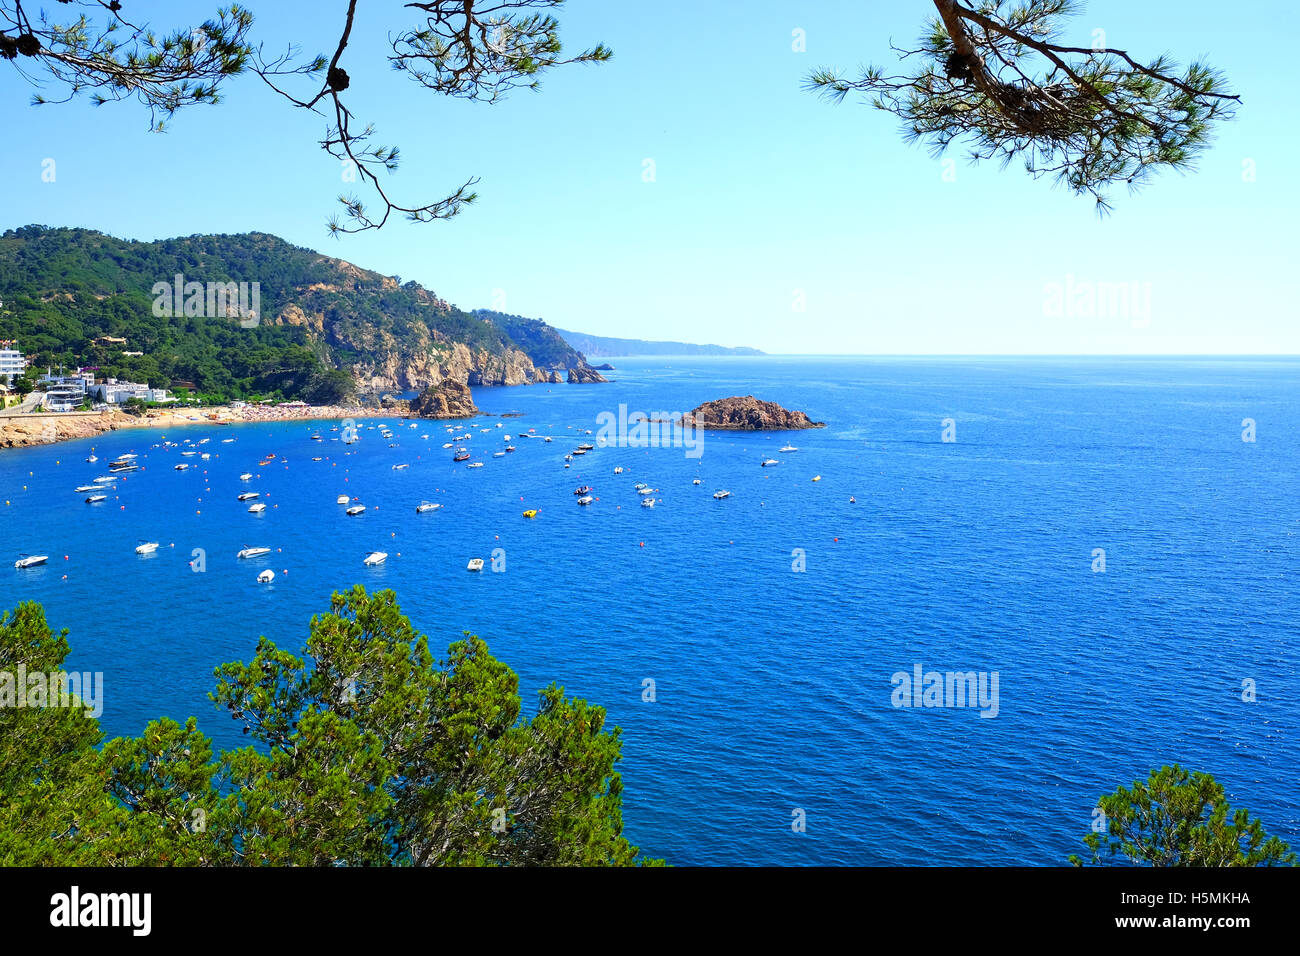 a view of the Costa Brava from Tossa De Mar, Spain - Stock Image